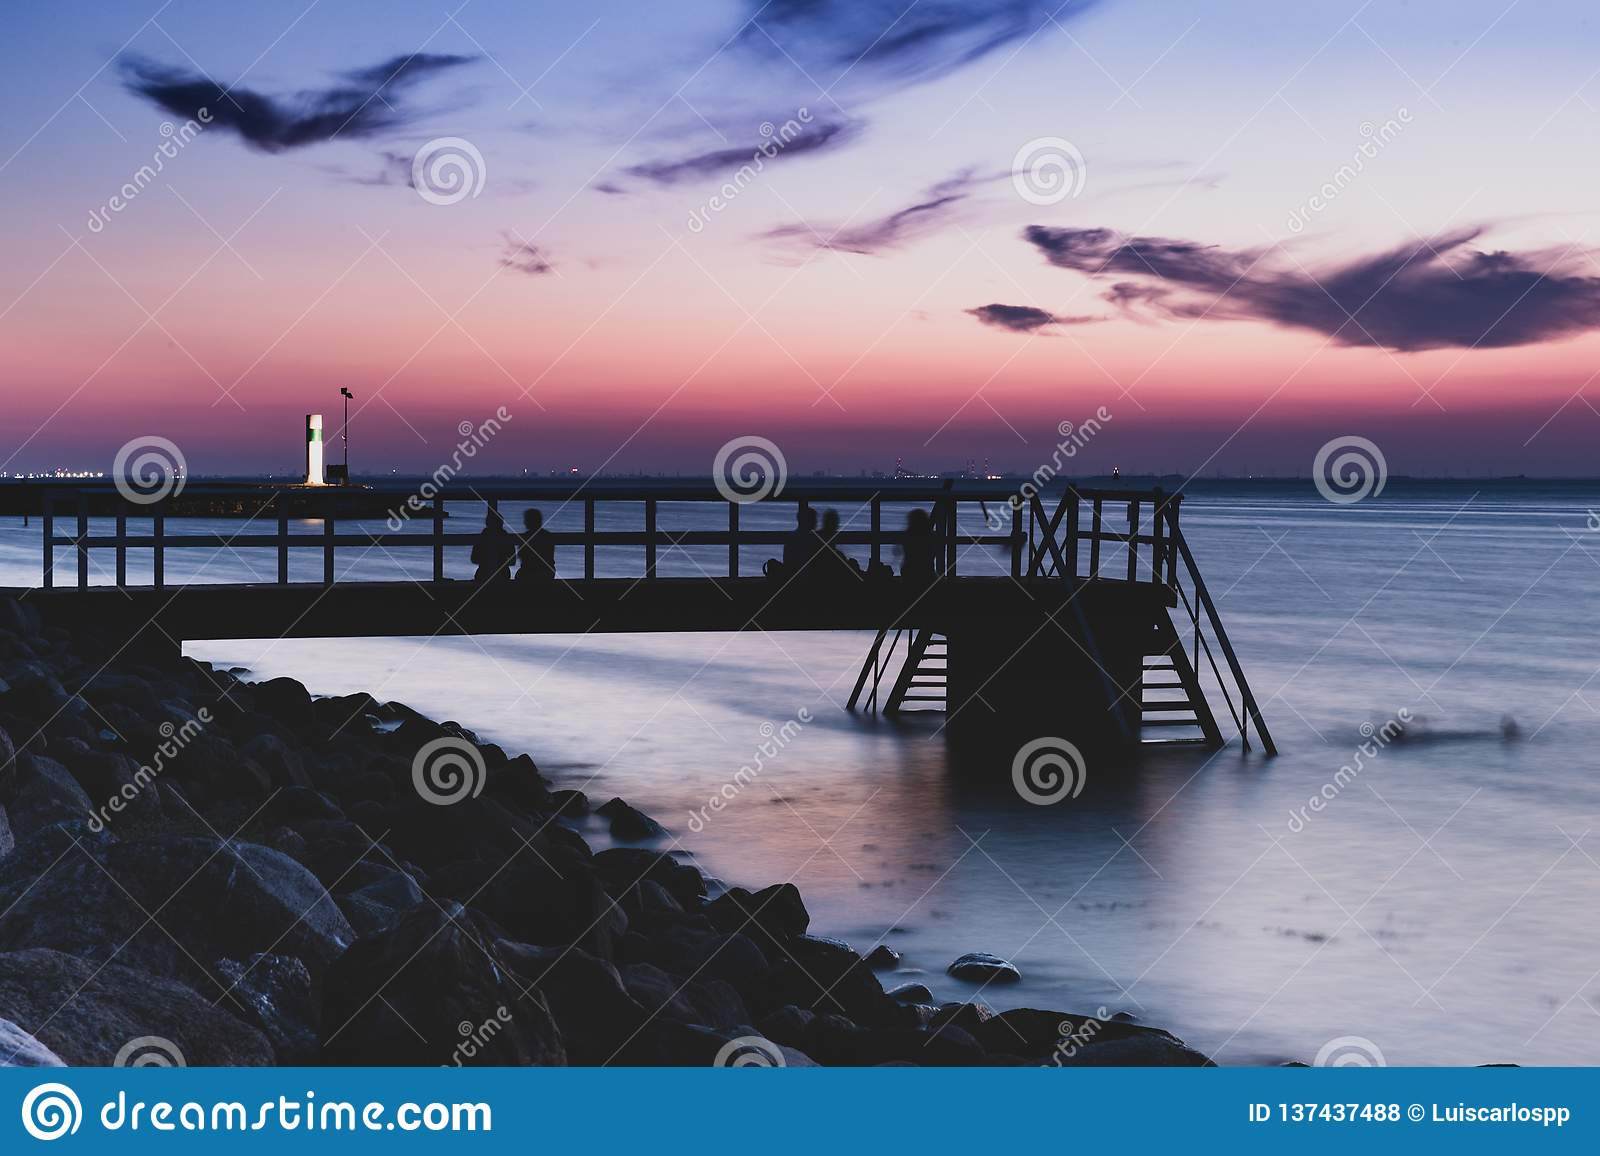 Evening Swim In Cold Waters Stock Photo - Image of outdoor, purple